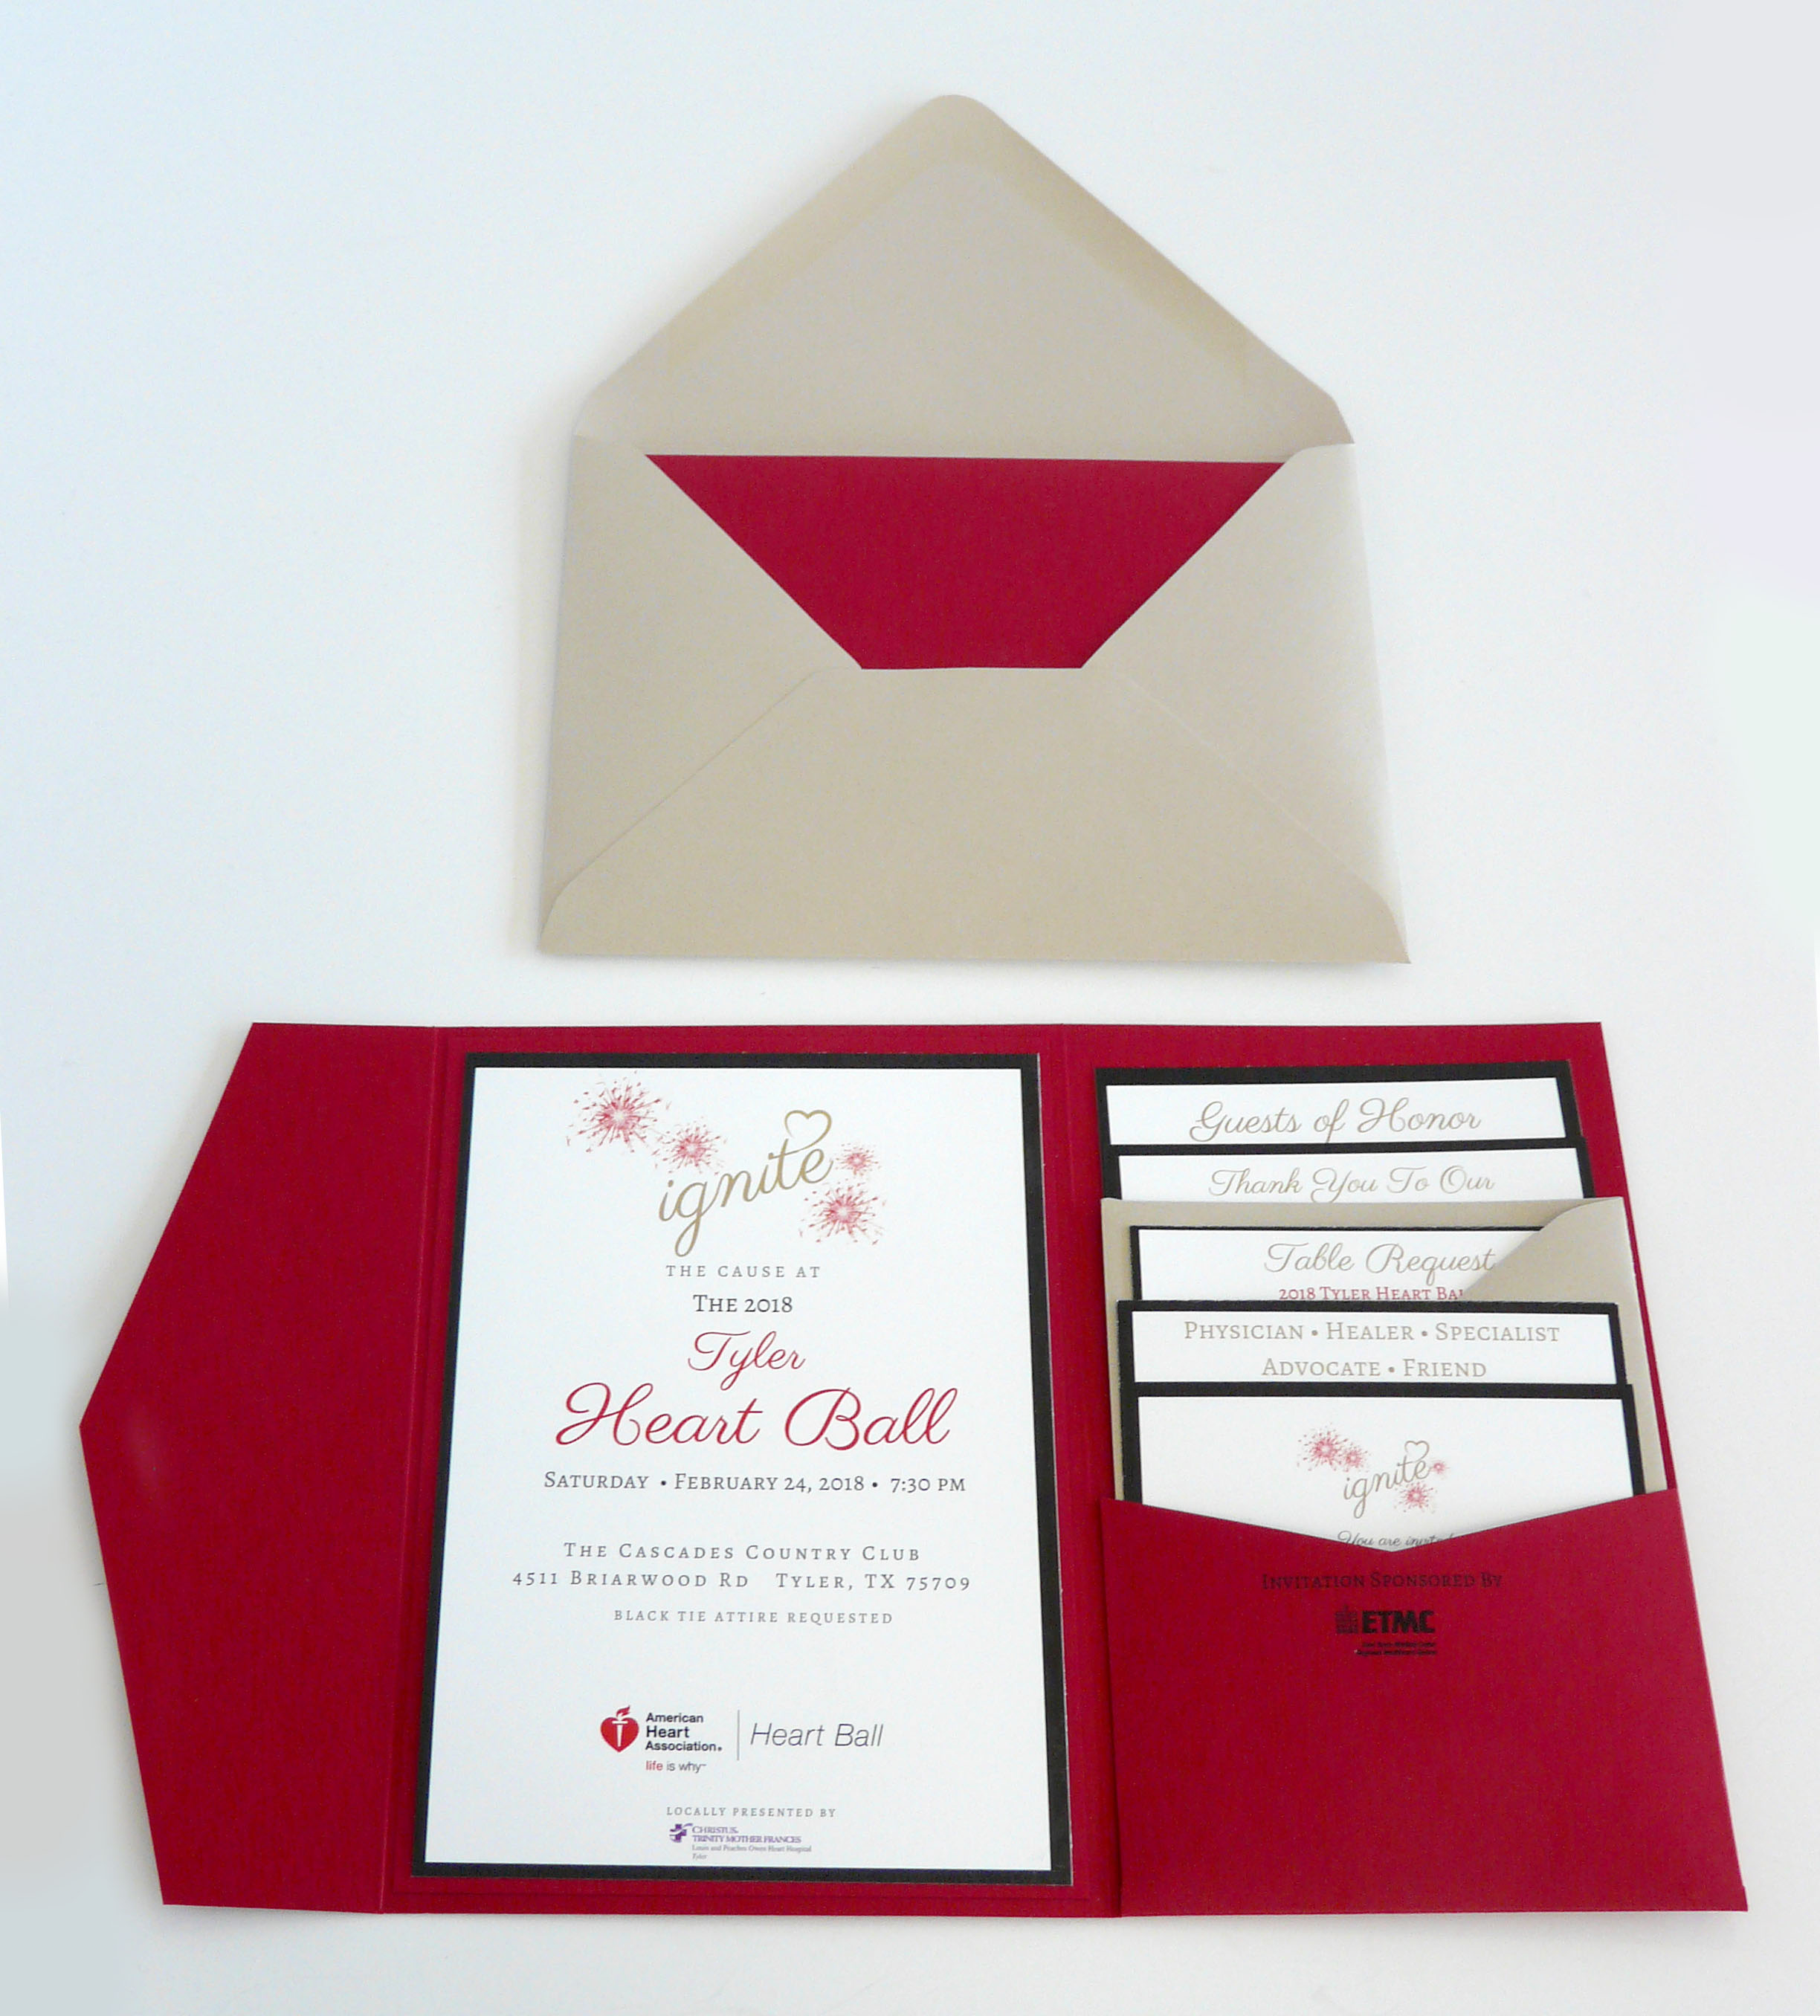 Elegant Invitation Folders for the Heart Ball